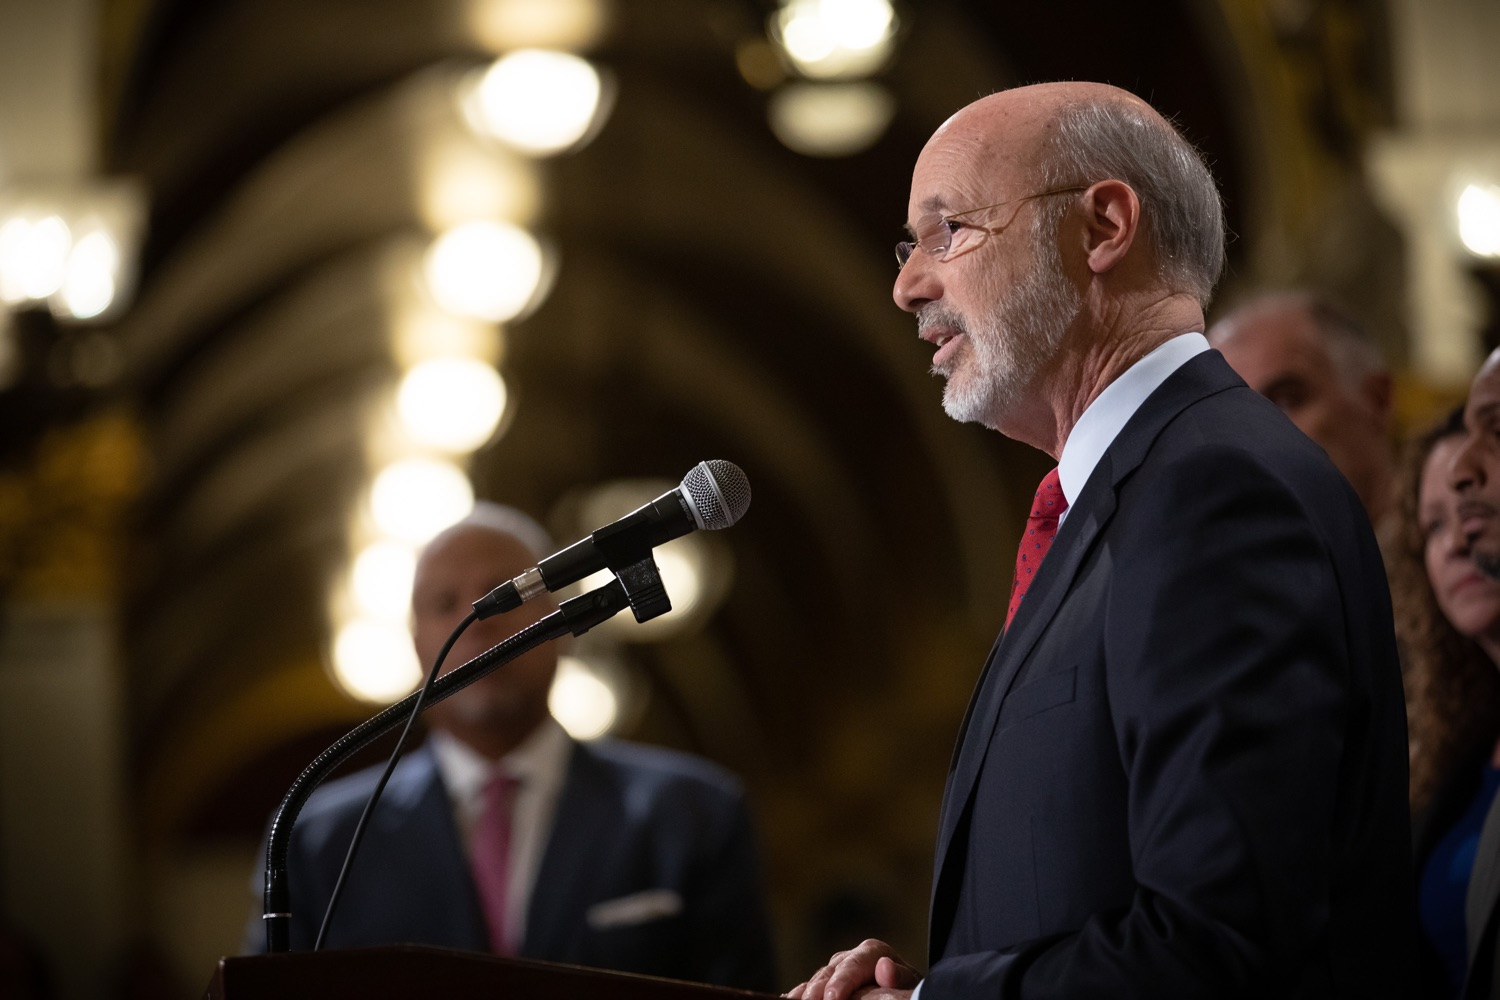 """<a href=""""http://filesource.abacast.com/commonwealthofpa/photo/17601_gov_right_on_crime_dz_014.jpg"""" target=""""_blank"""">⇣Download Photo<br></a>Governor Tom Wolf speaking at the event. Governor Tom Wolf was joined by Deputy Secretary of Corrections Christian Stephens and national criminal justice reform advocates today in the Capitol Rotunda to push for commonsense probation reforms that address probation sentences and probation lengths.  Harrisburg, PA  November 18, 2019"""